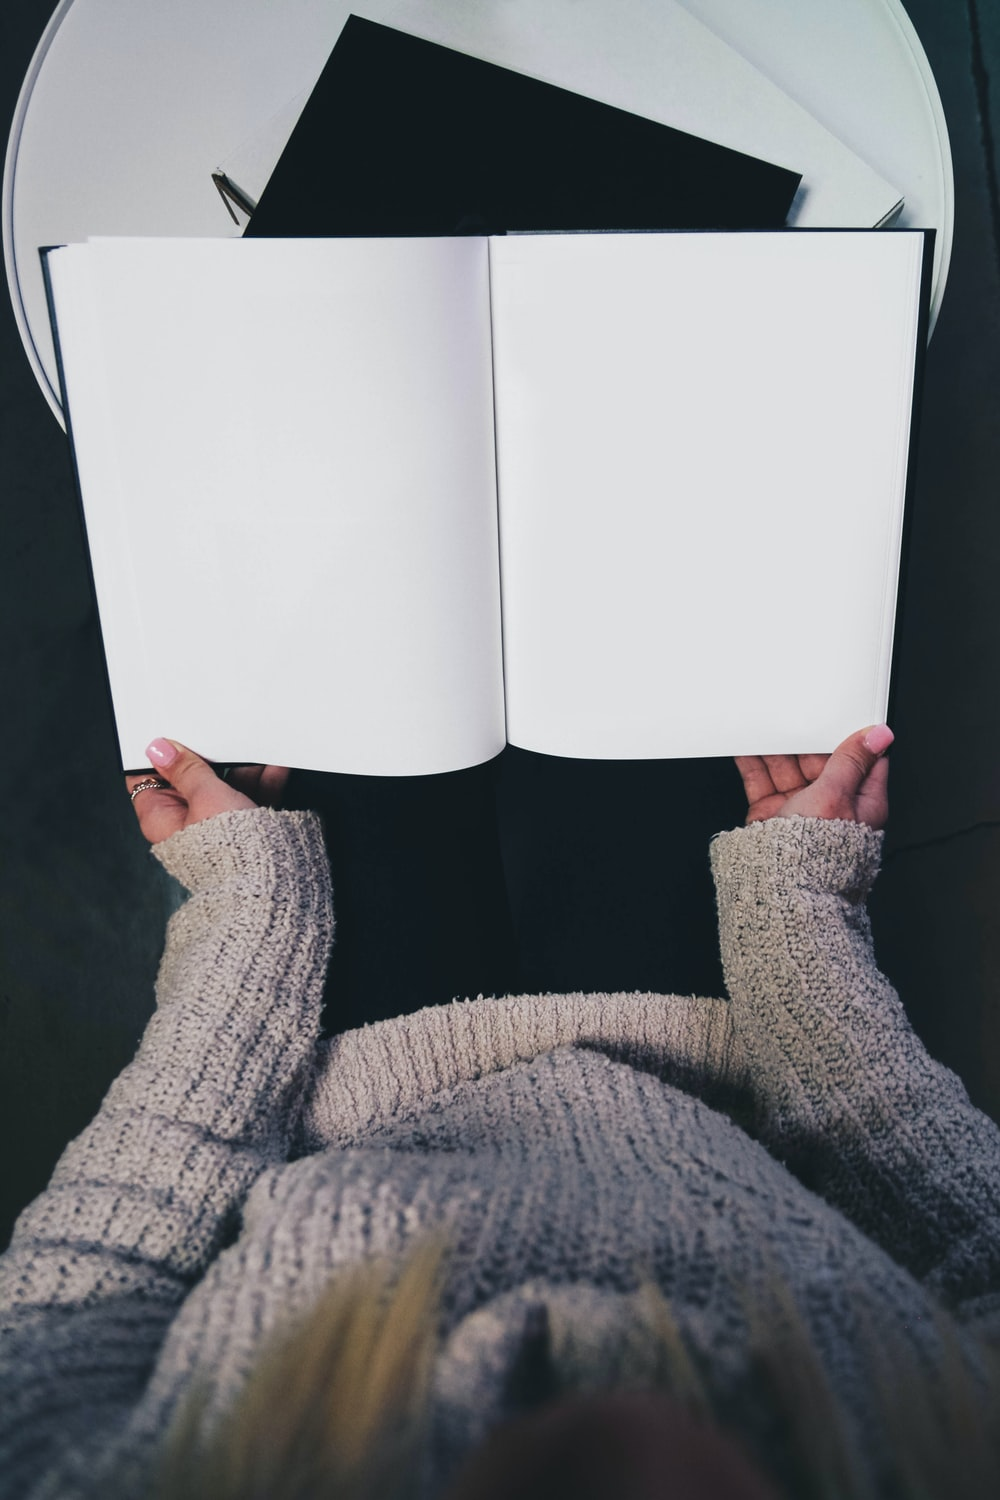 woman wearing sweater opening blank book